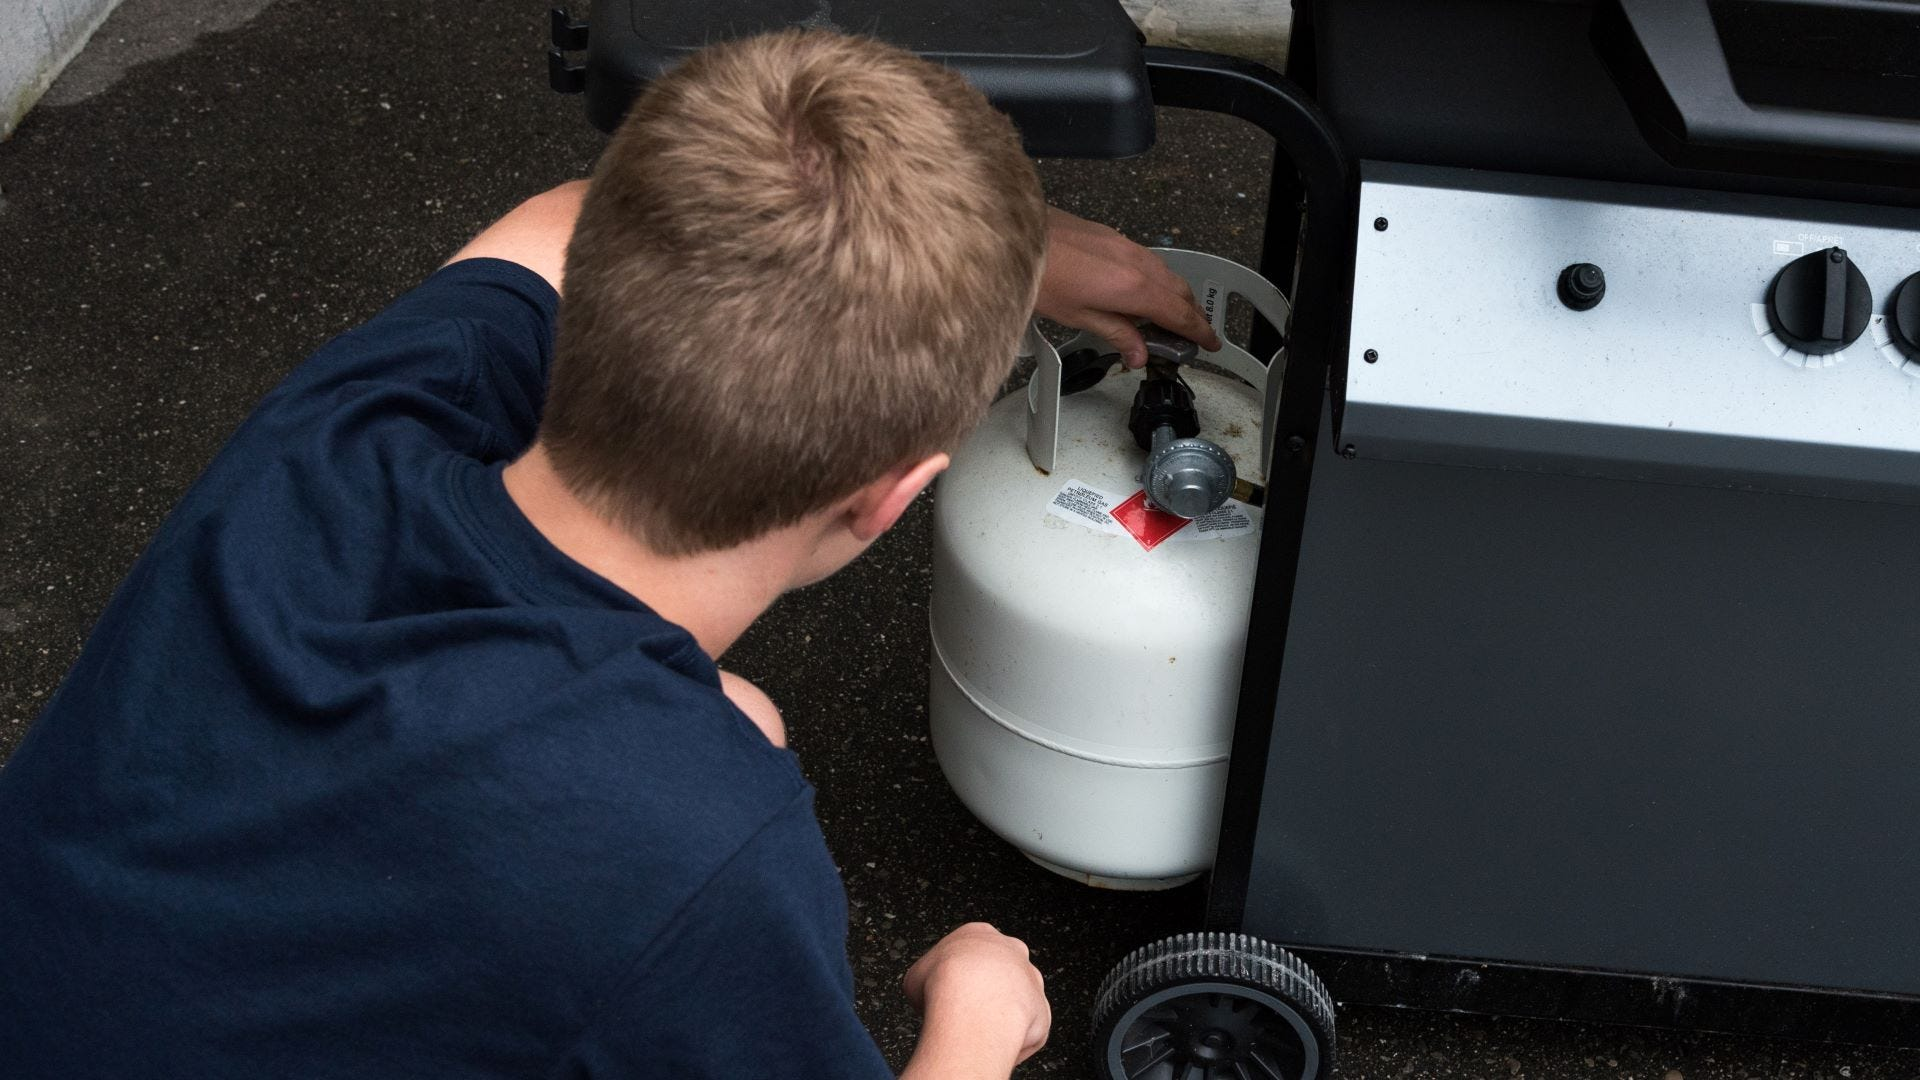 A young boy checking the propane tank on a grill.